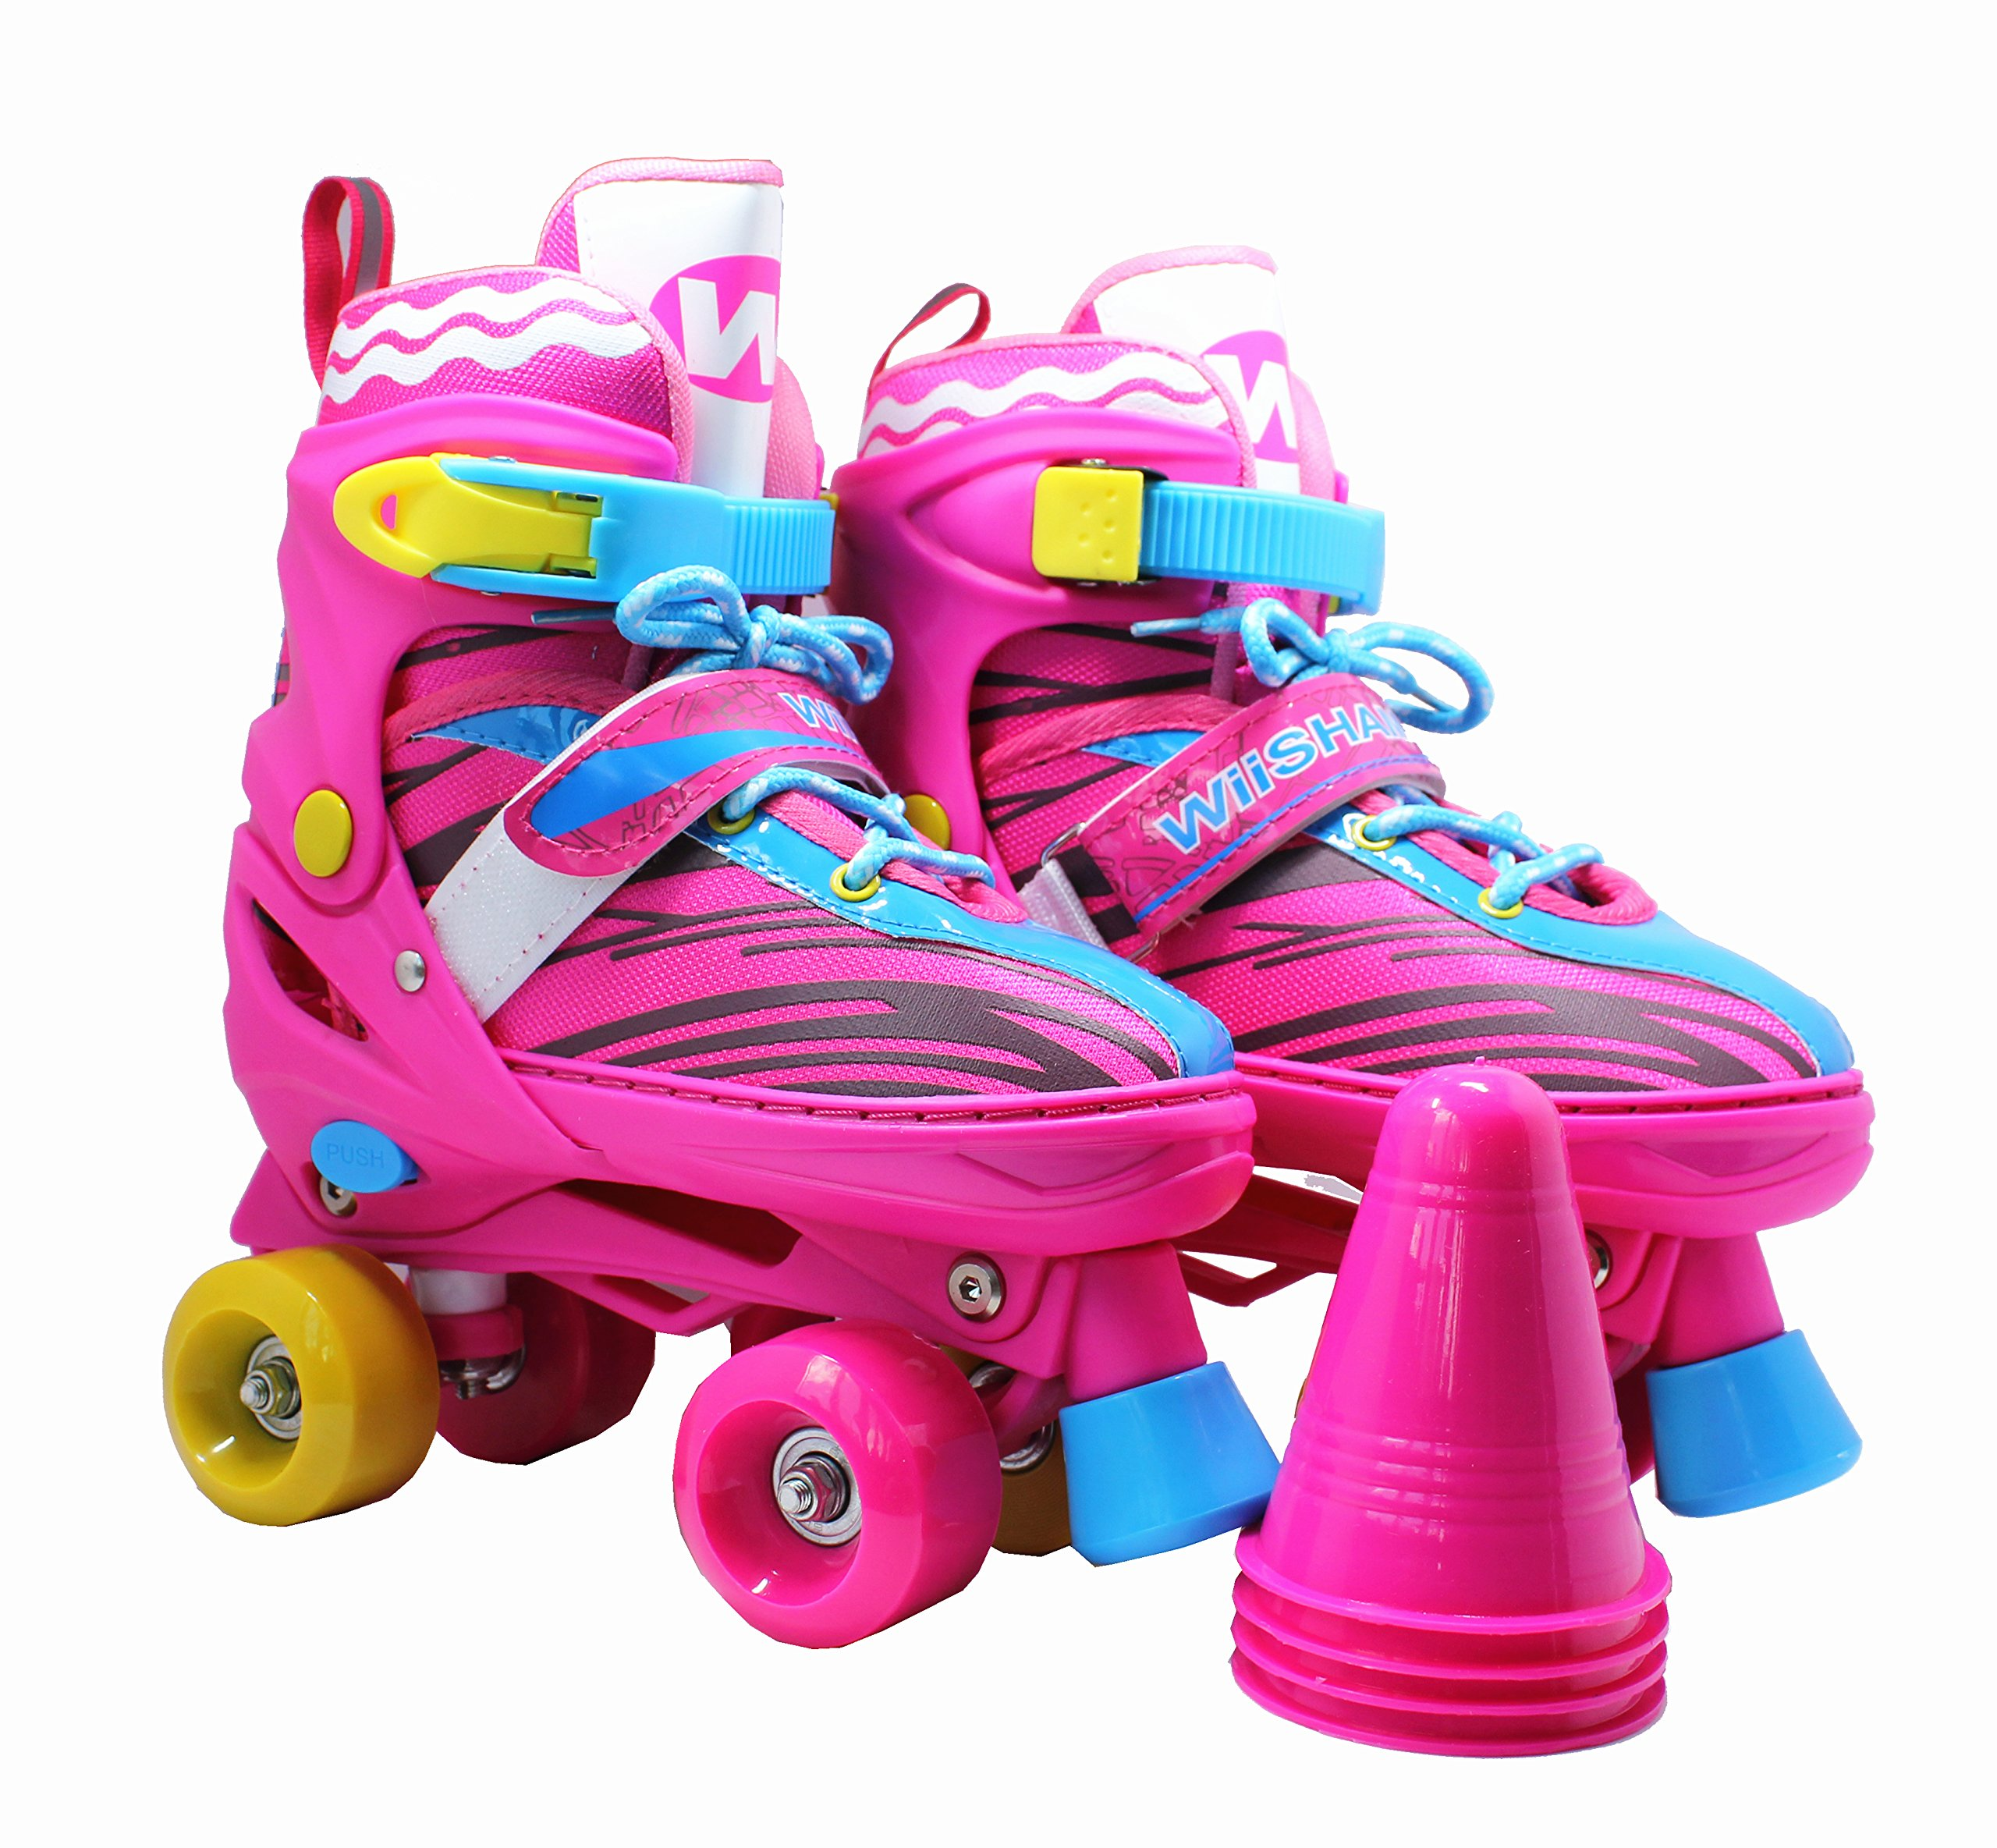 WiiSHAM Fun Roll Adjustable Canvas Roller Skates With Four Piles… (Pink and Yellow, medium)